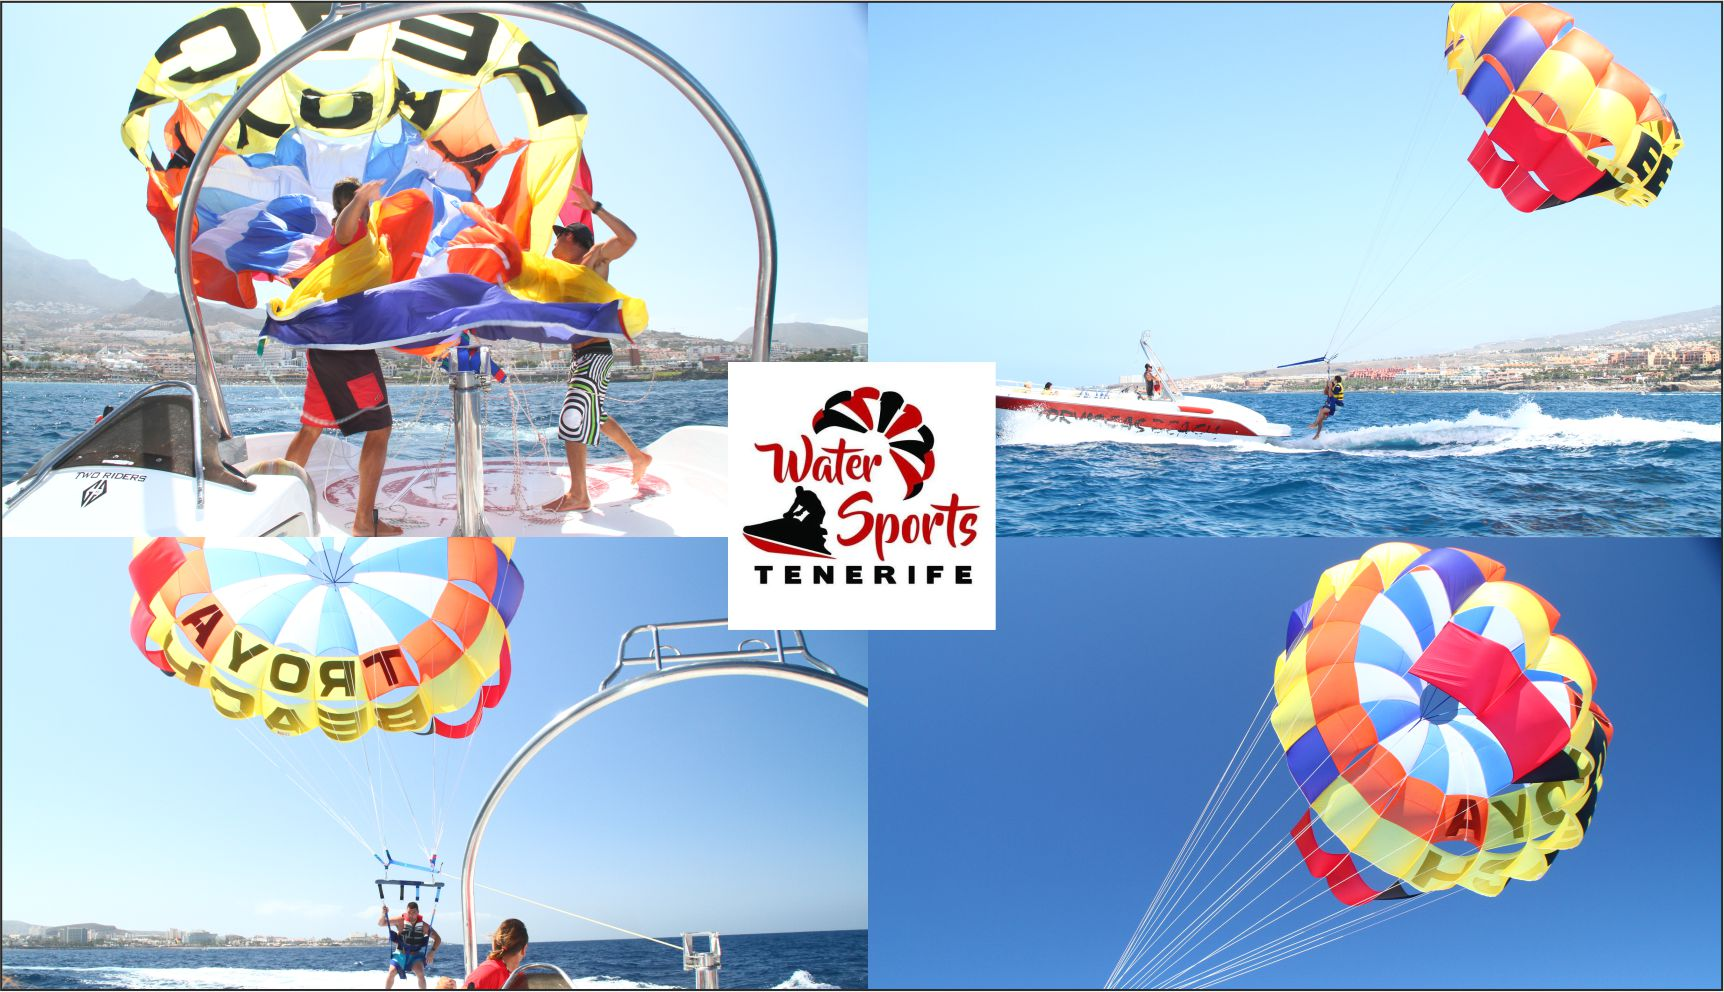 water sports tenerife islas canarias watersport en costa adeje puerto colon